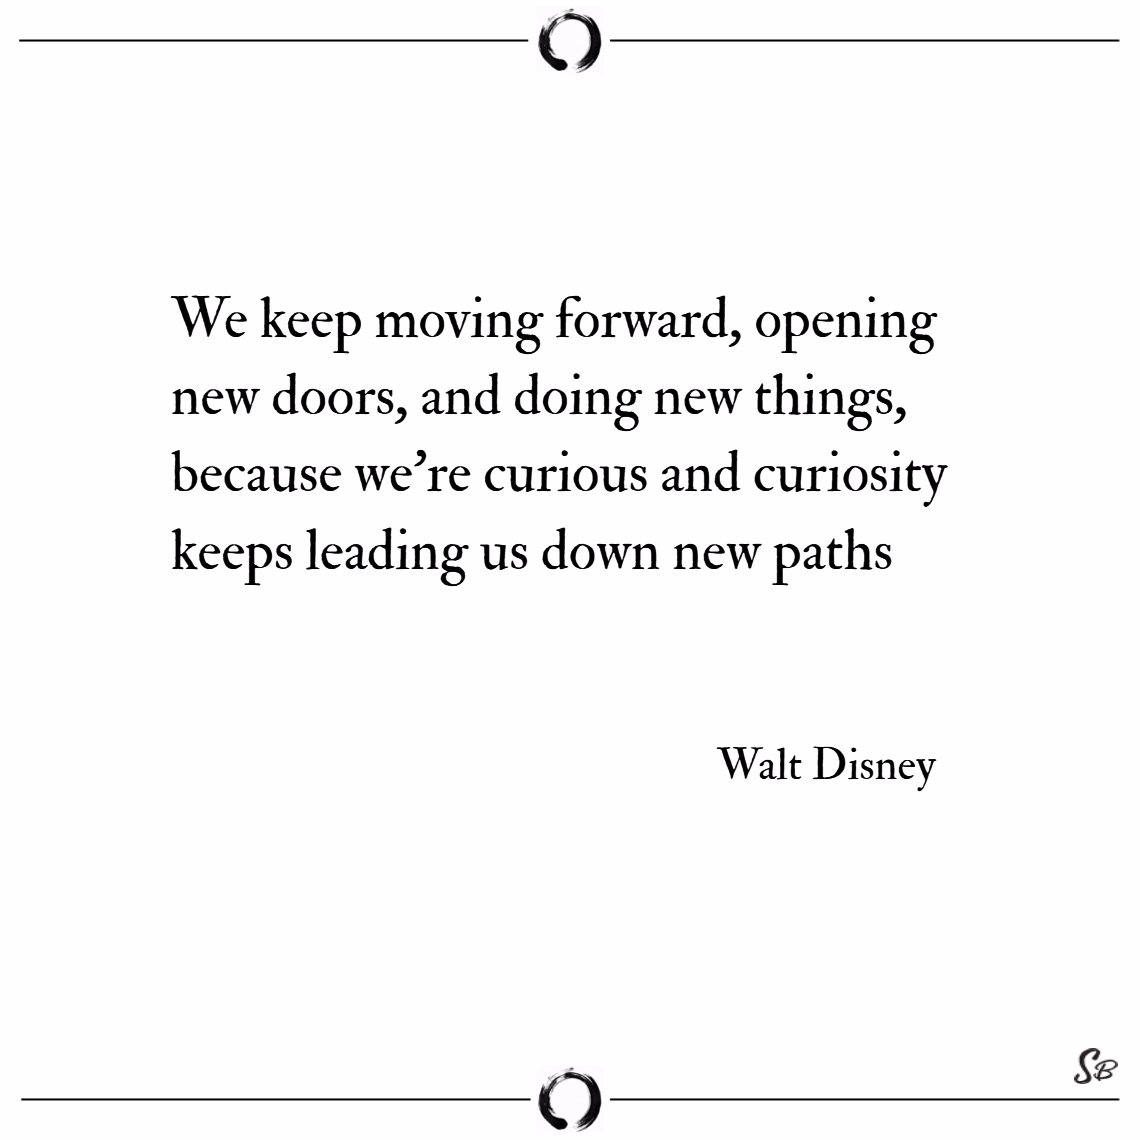 We keep moving forward, opening new doors, and doi